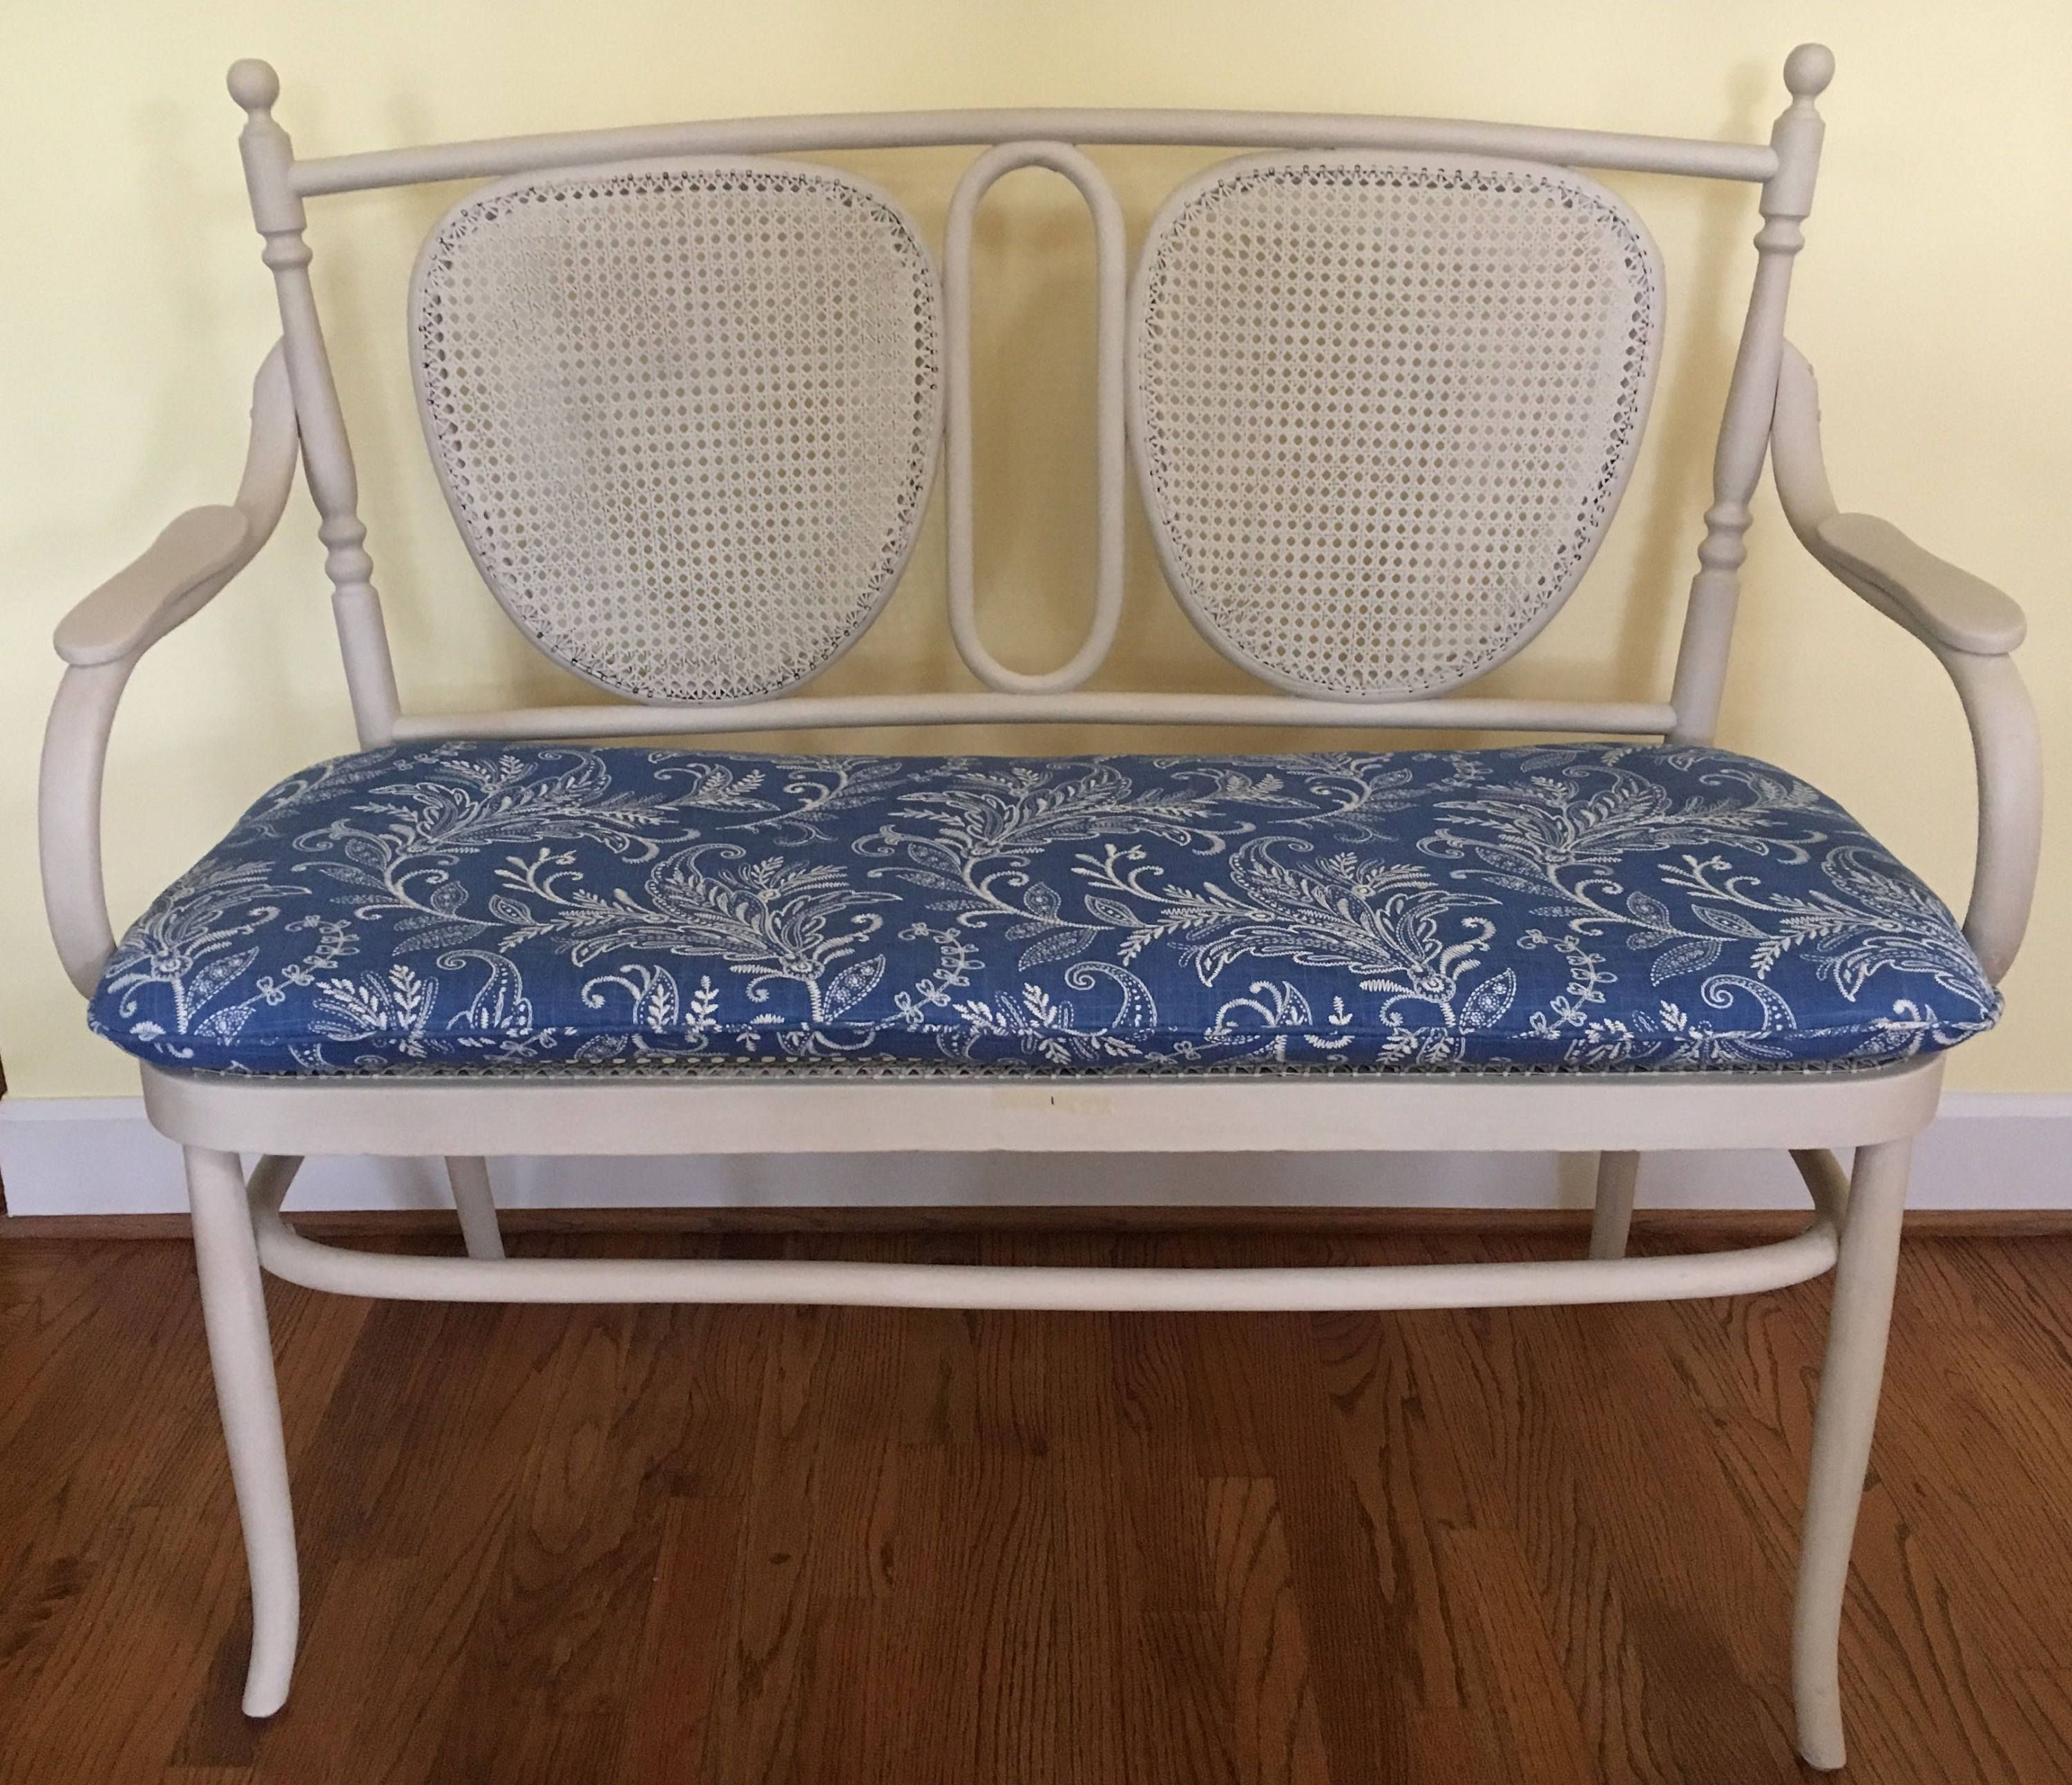 Parisian bistro style caned settee with separate seat cushion and